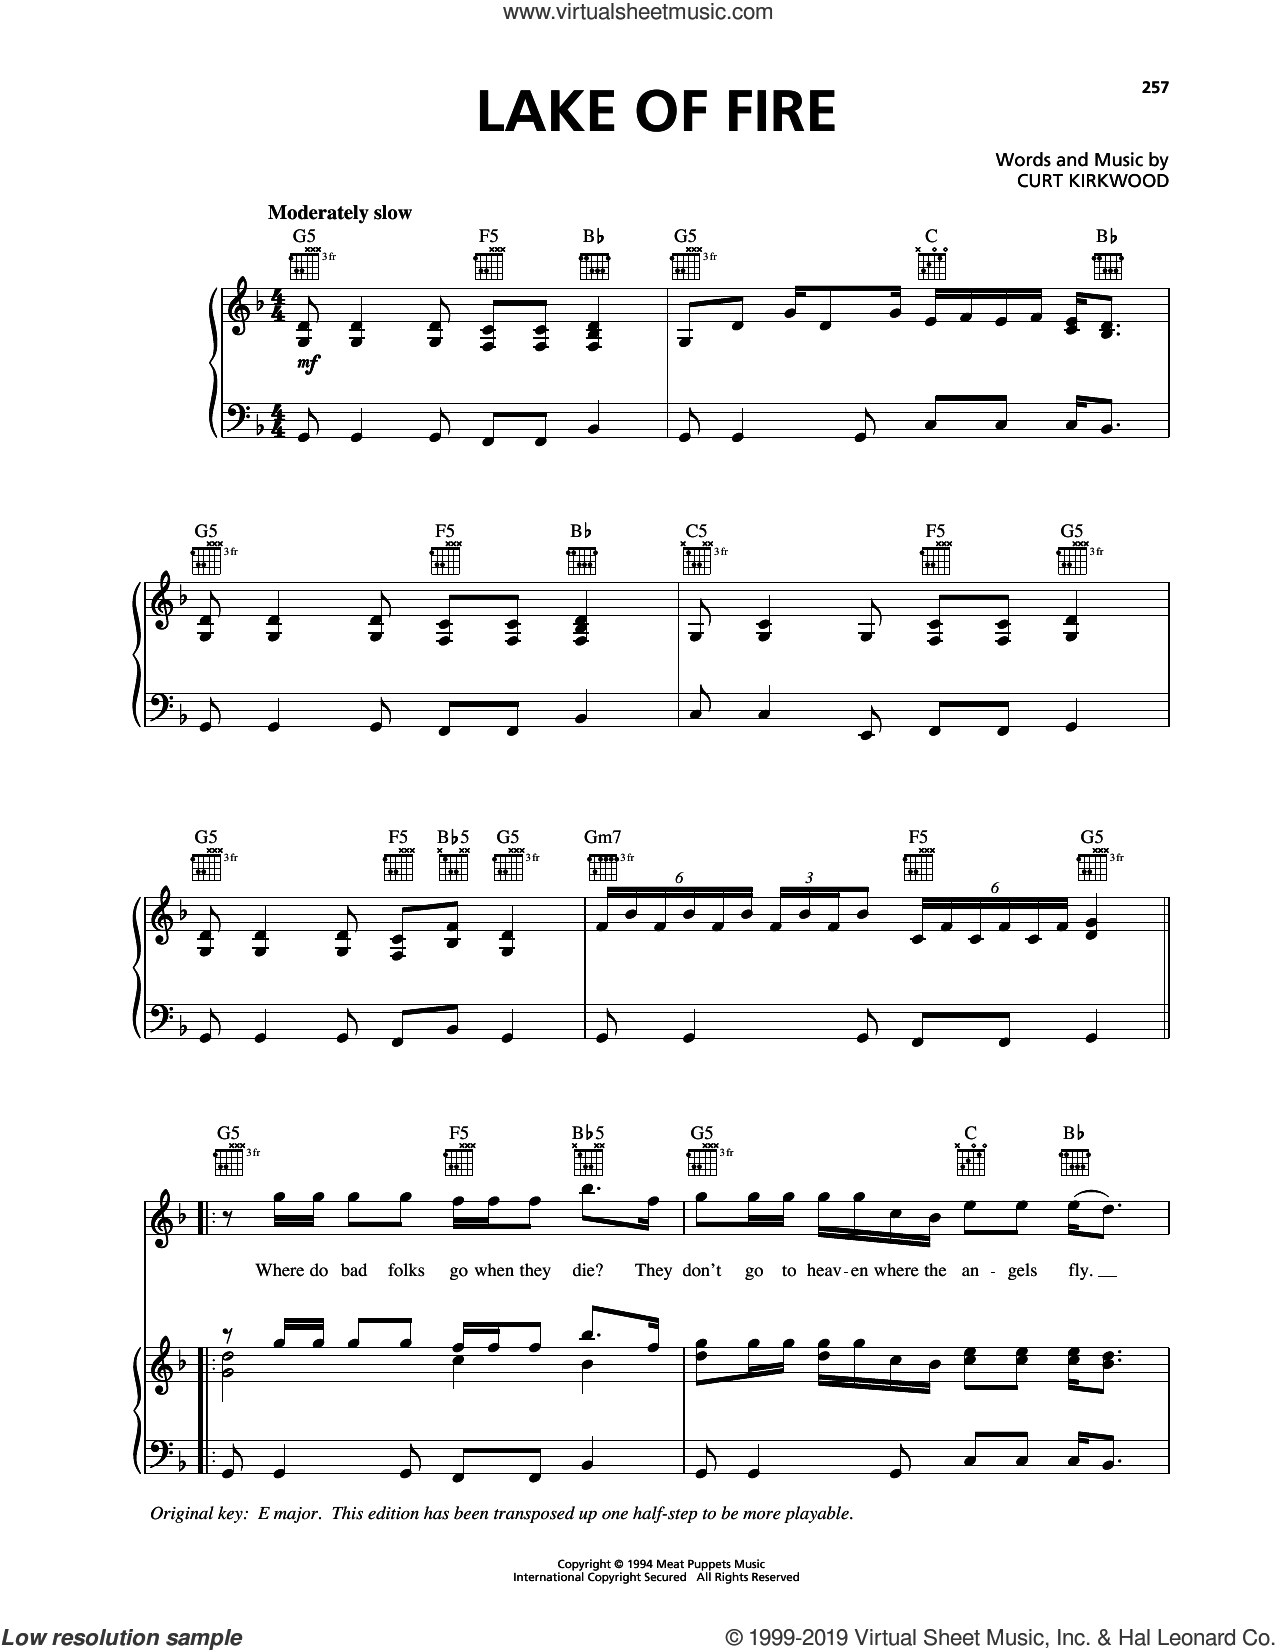 Lake Of Fire sheet music for voice, piano or guitar by Nirvana and Curt Kirkwood, intermediate skill level